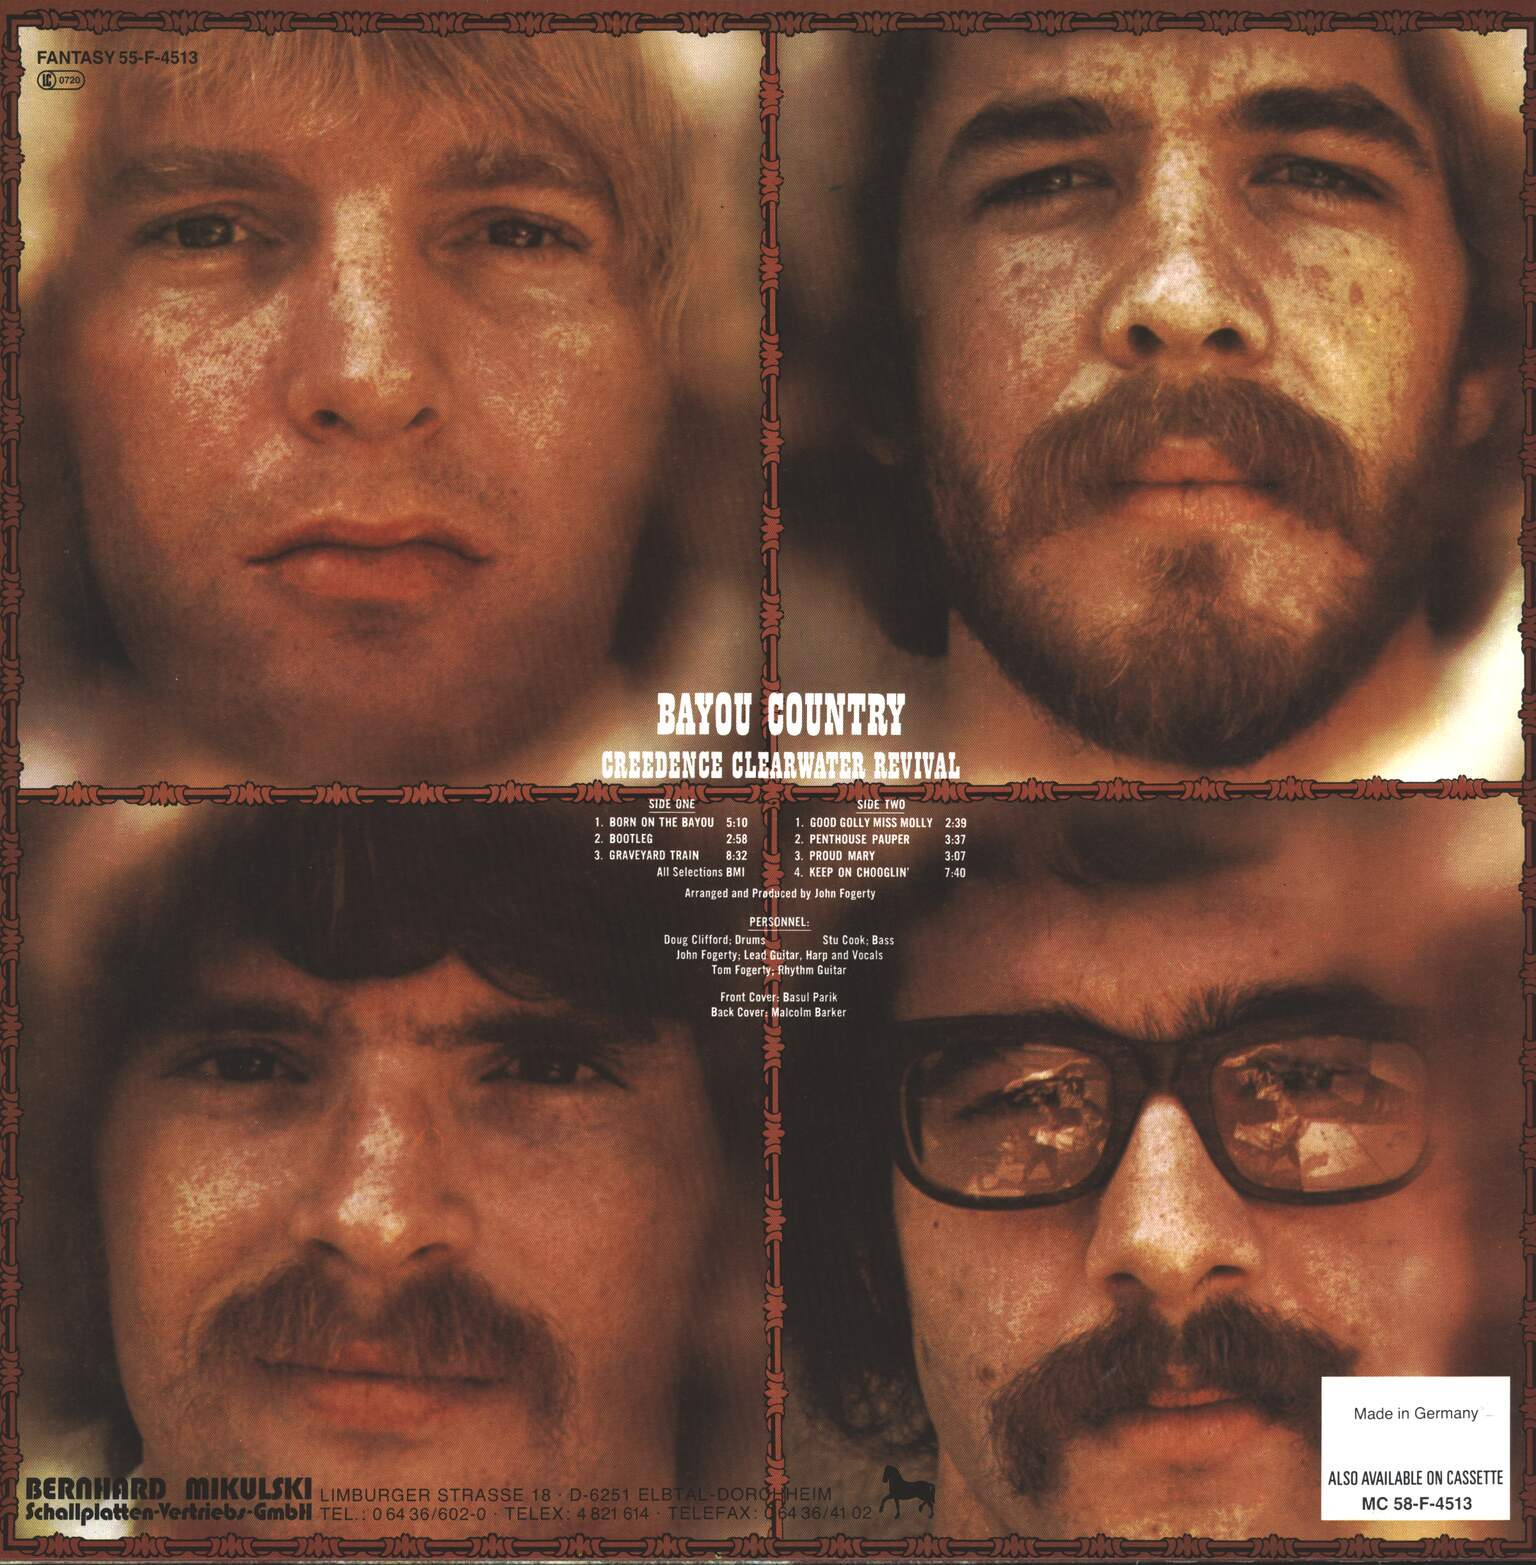 Creedence Clearwater Revival: Bayou Country, 1×LP (Vinyl)